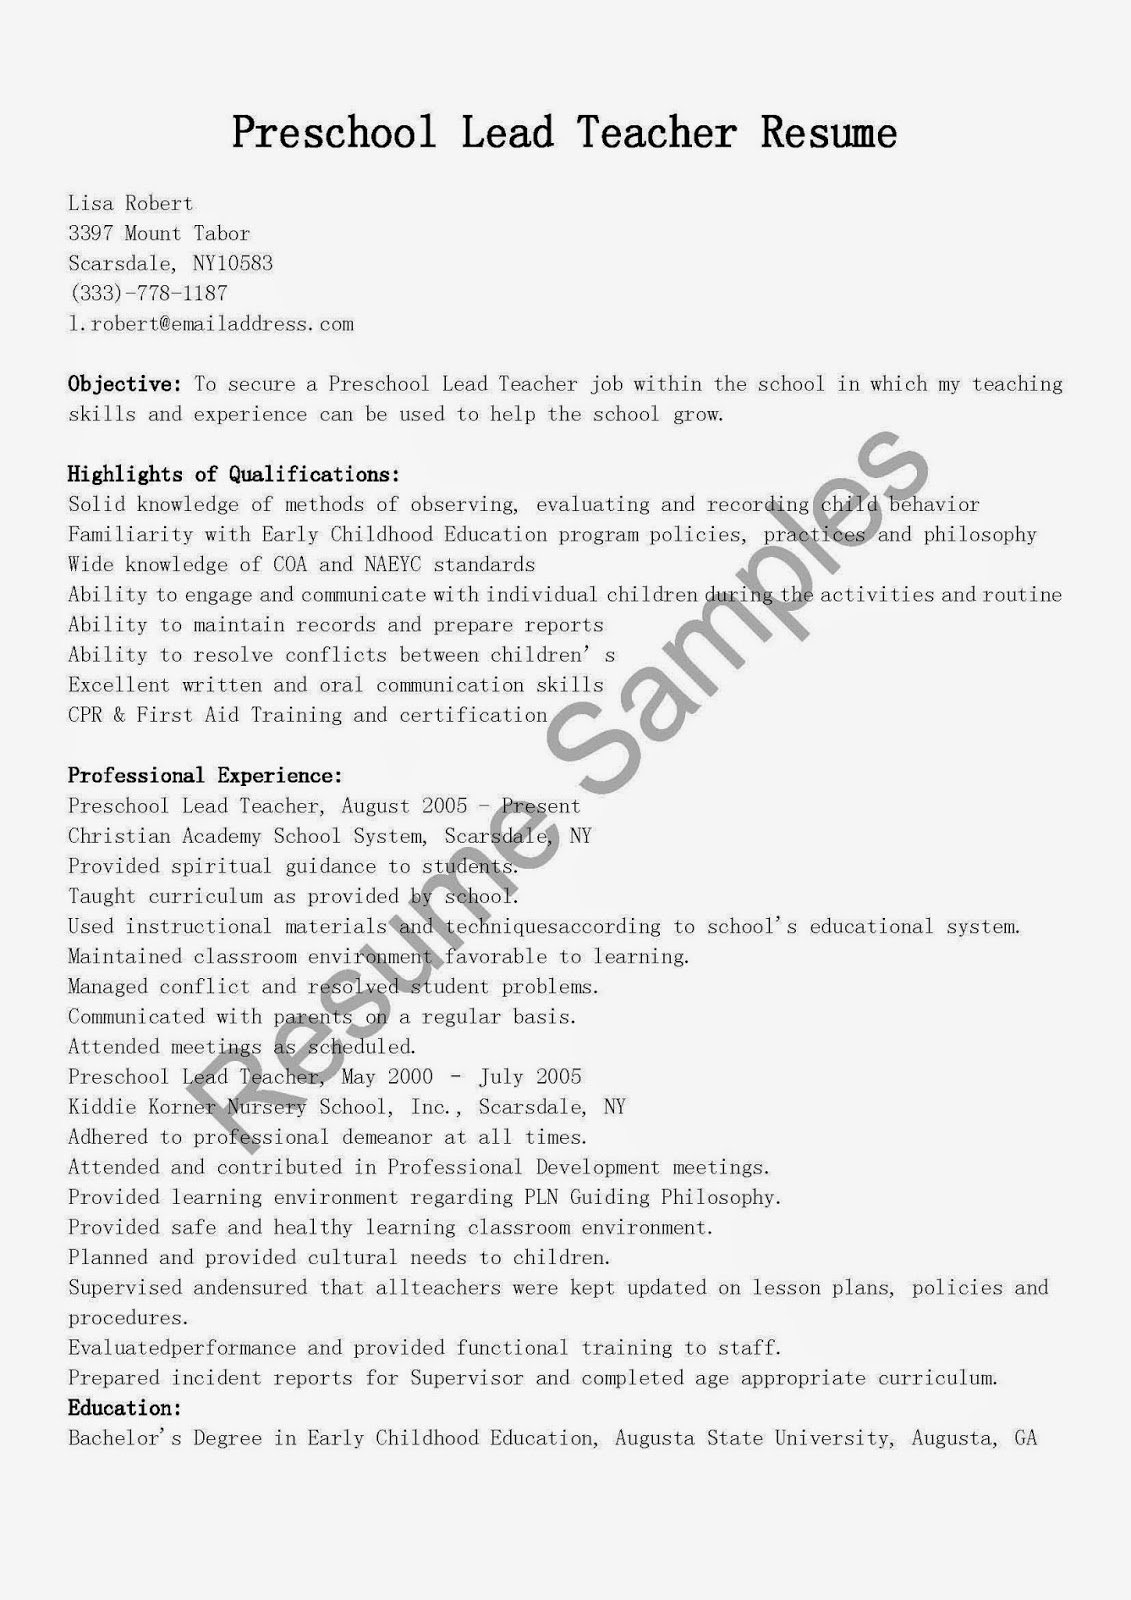 Resume Samples Preschool Lead Teacher Resume Sample